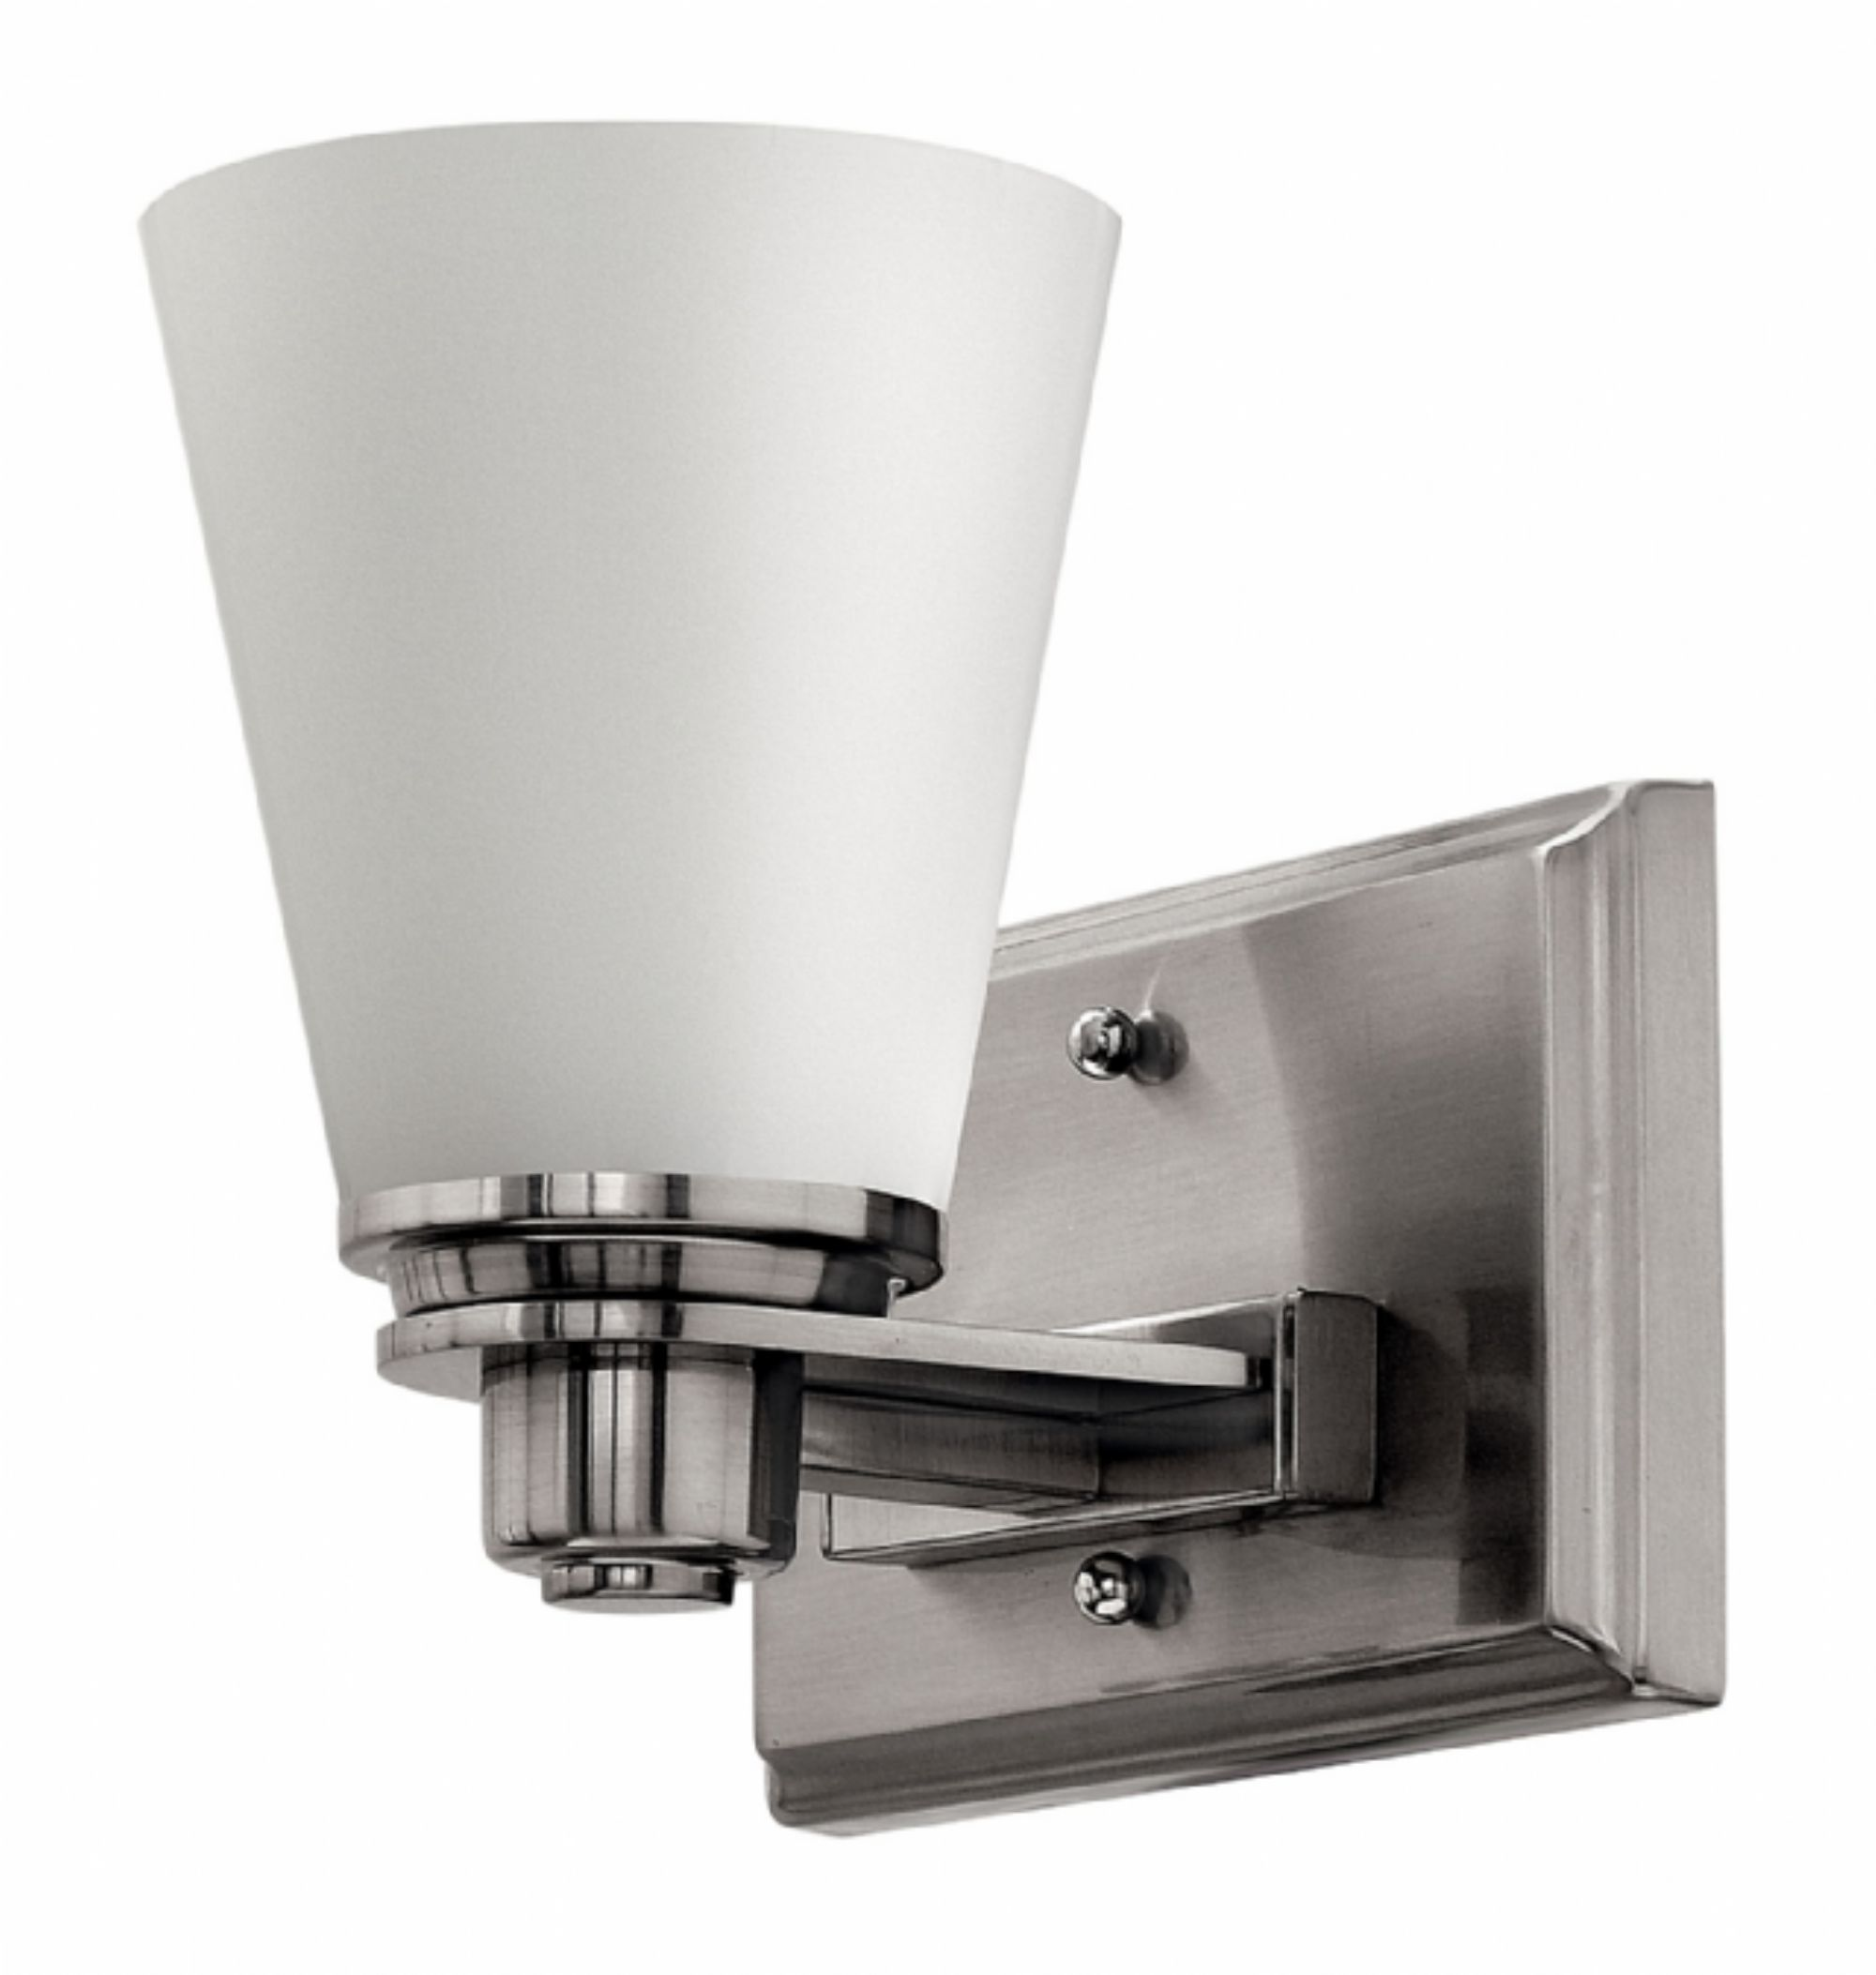 hinkley lighting avon 5550bn vanity lights pinterest hinkley